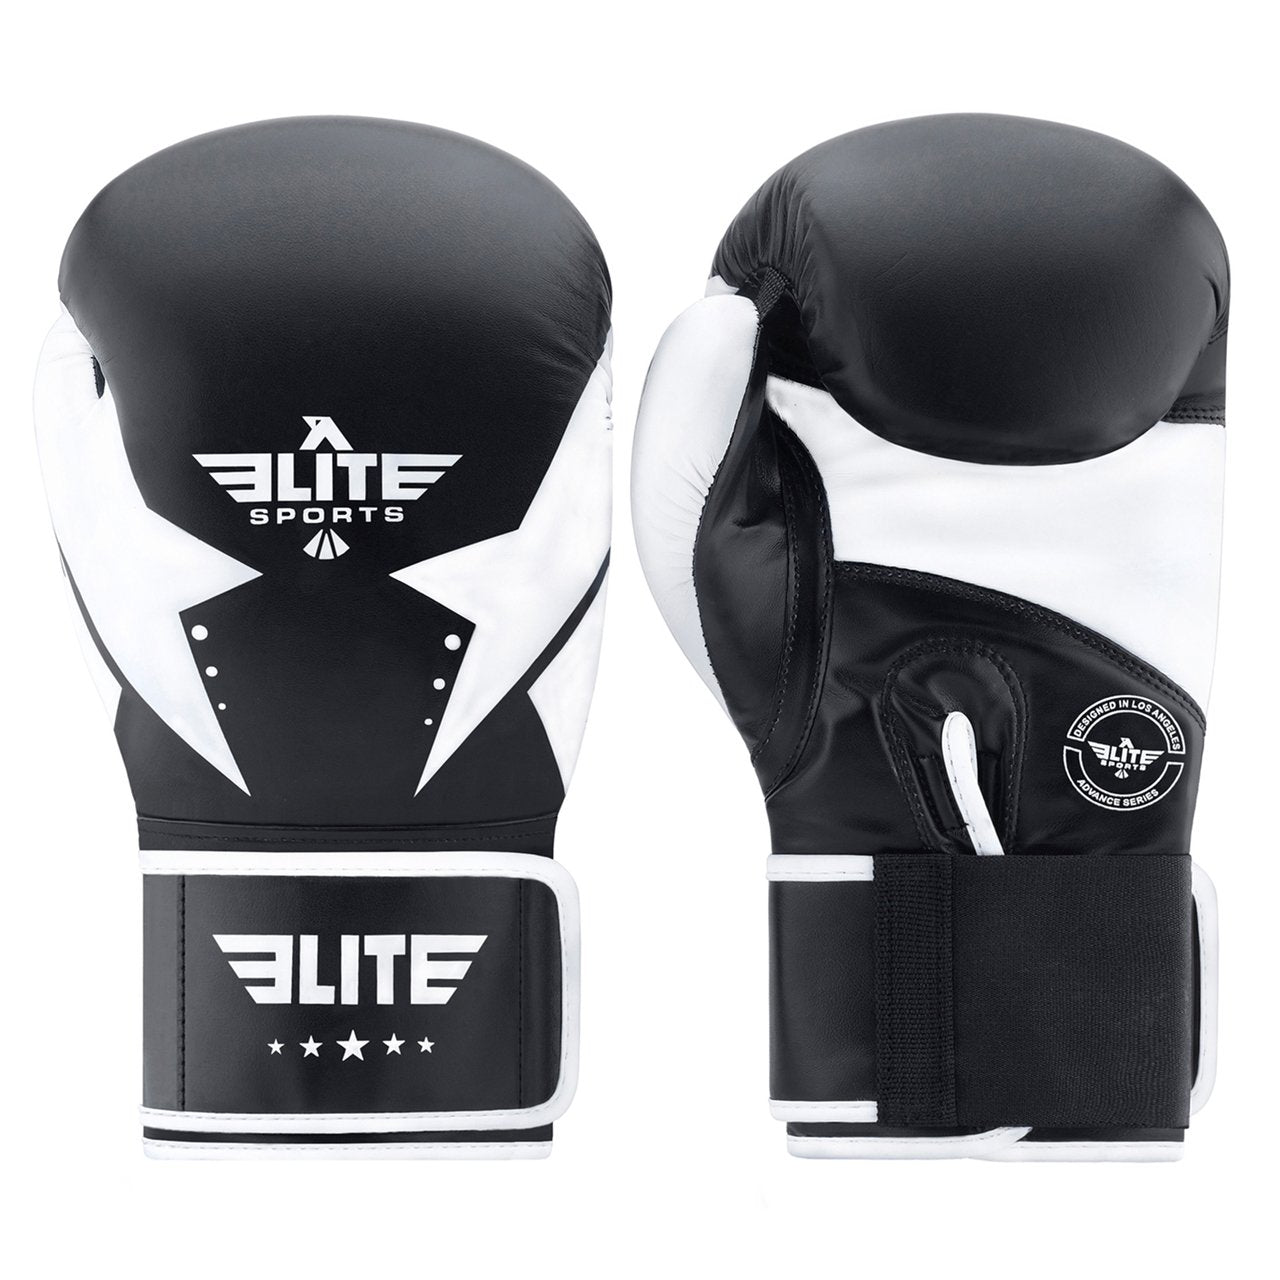 Load image into Gallery viewer, Elite Sports Star Series Black/White Adult Boxing Gloves